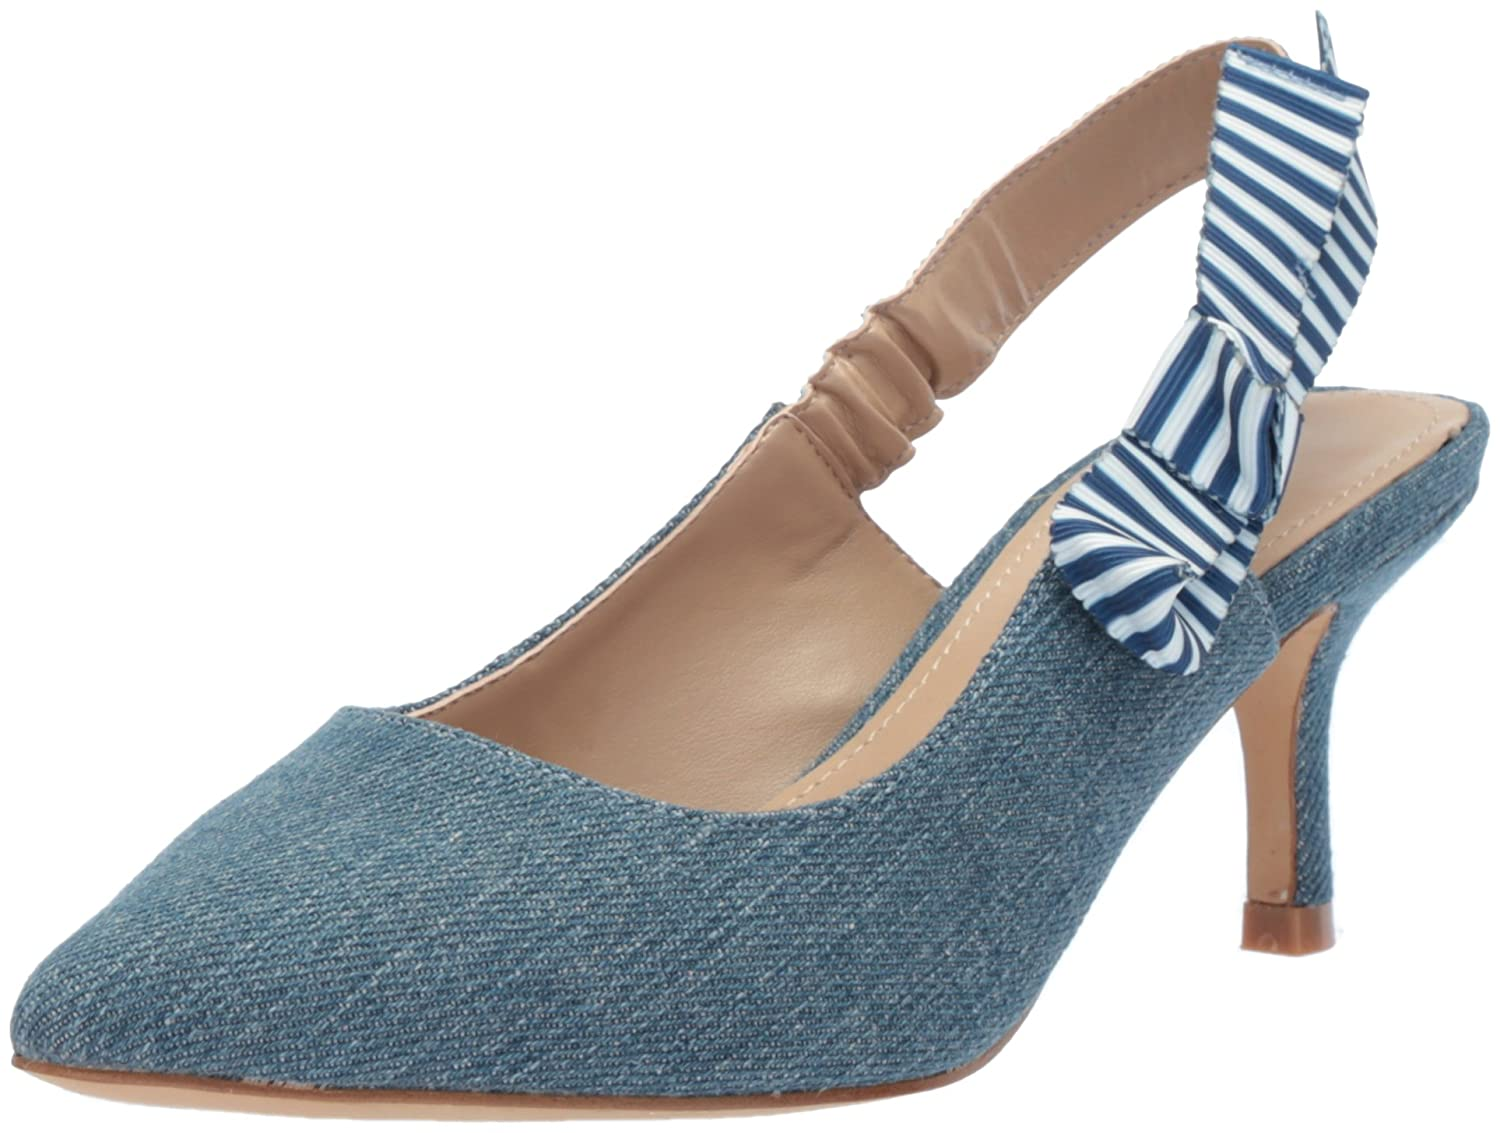 The Fix Women's Fatina Kitten Heel Slingback Pump B07711QM81 8 B(M) US|Denim Textile